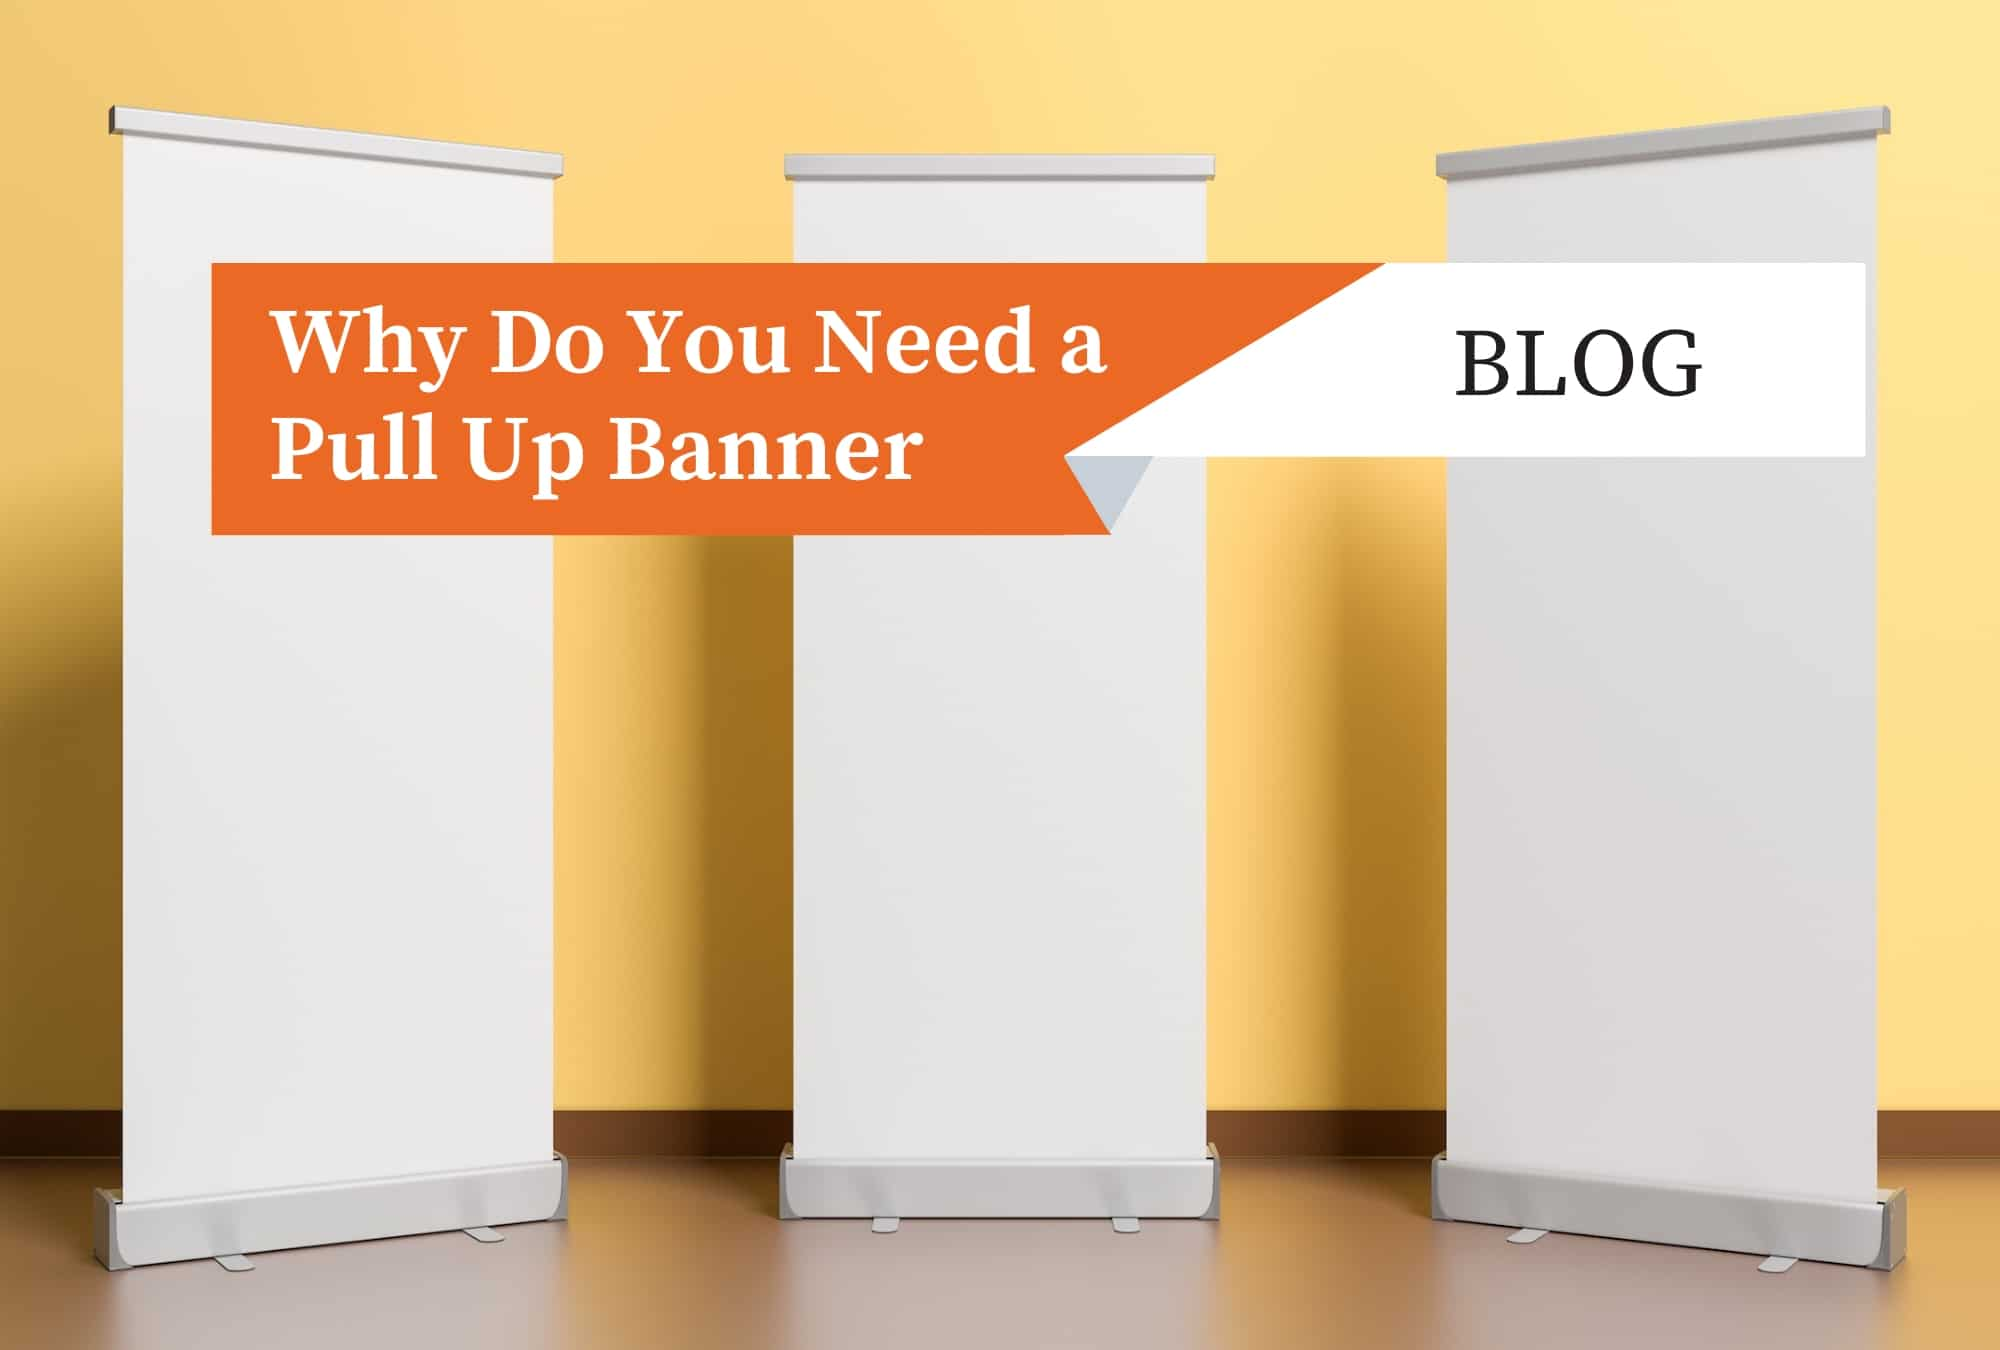 Why Do You Need a Pull Up Banner